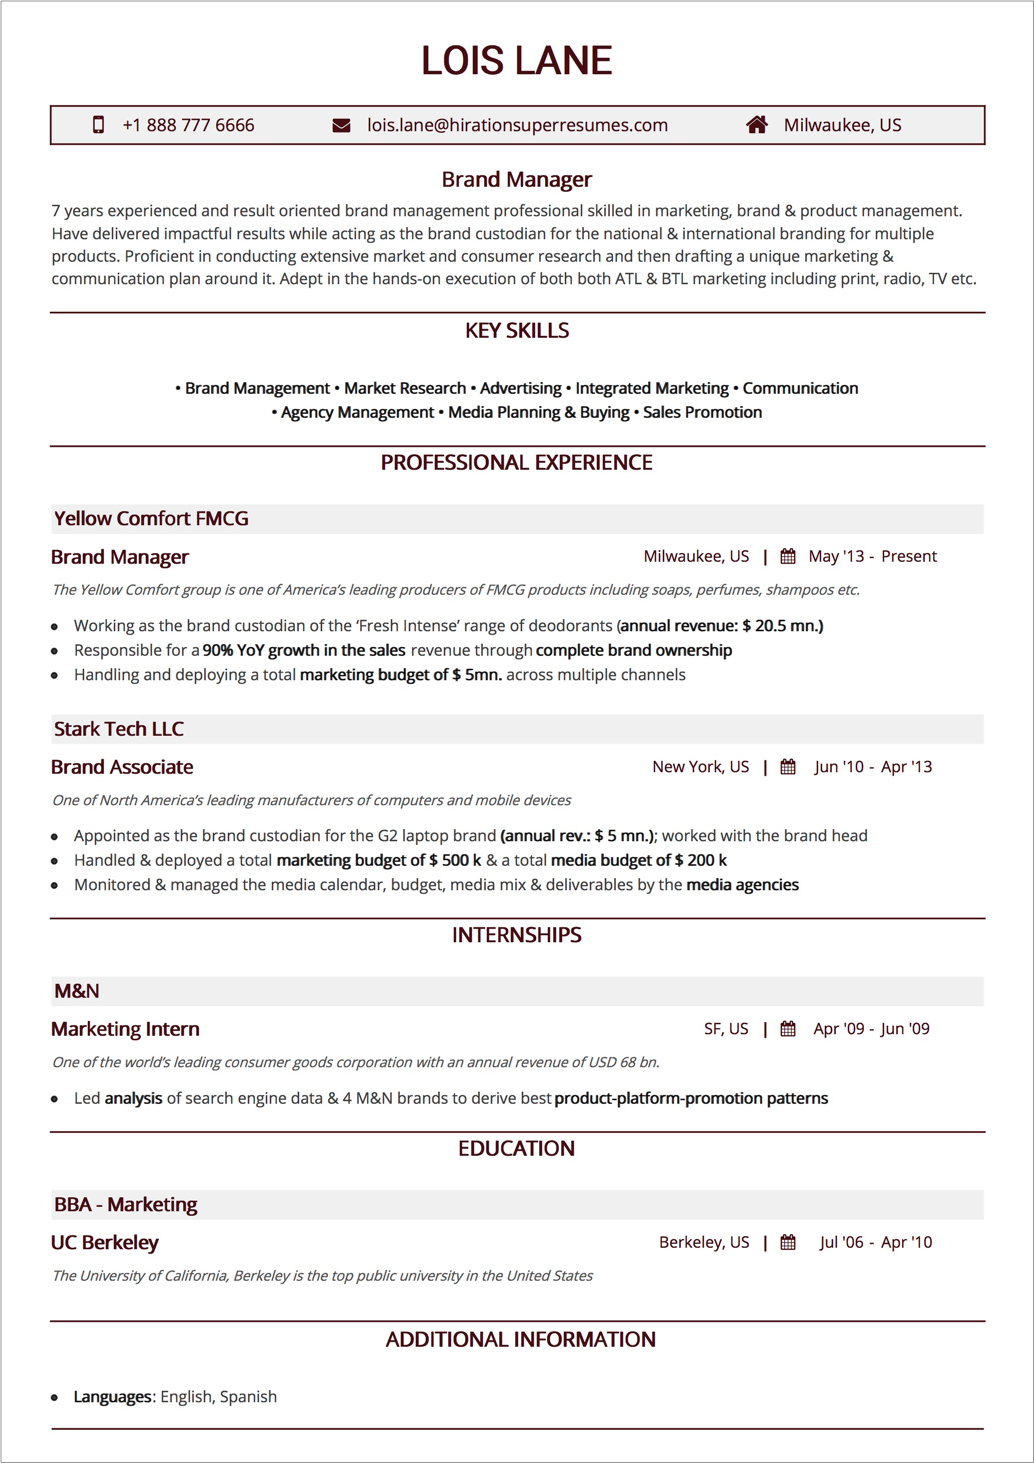 Reverse Chronological Resume Format 1